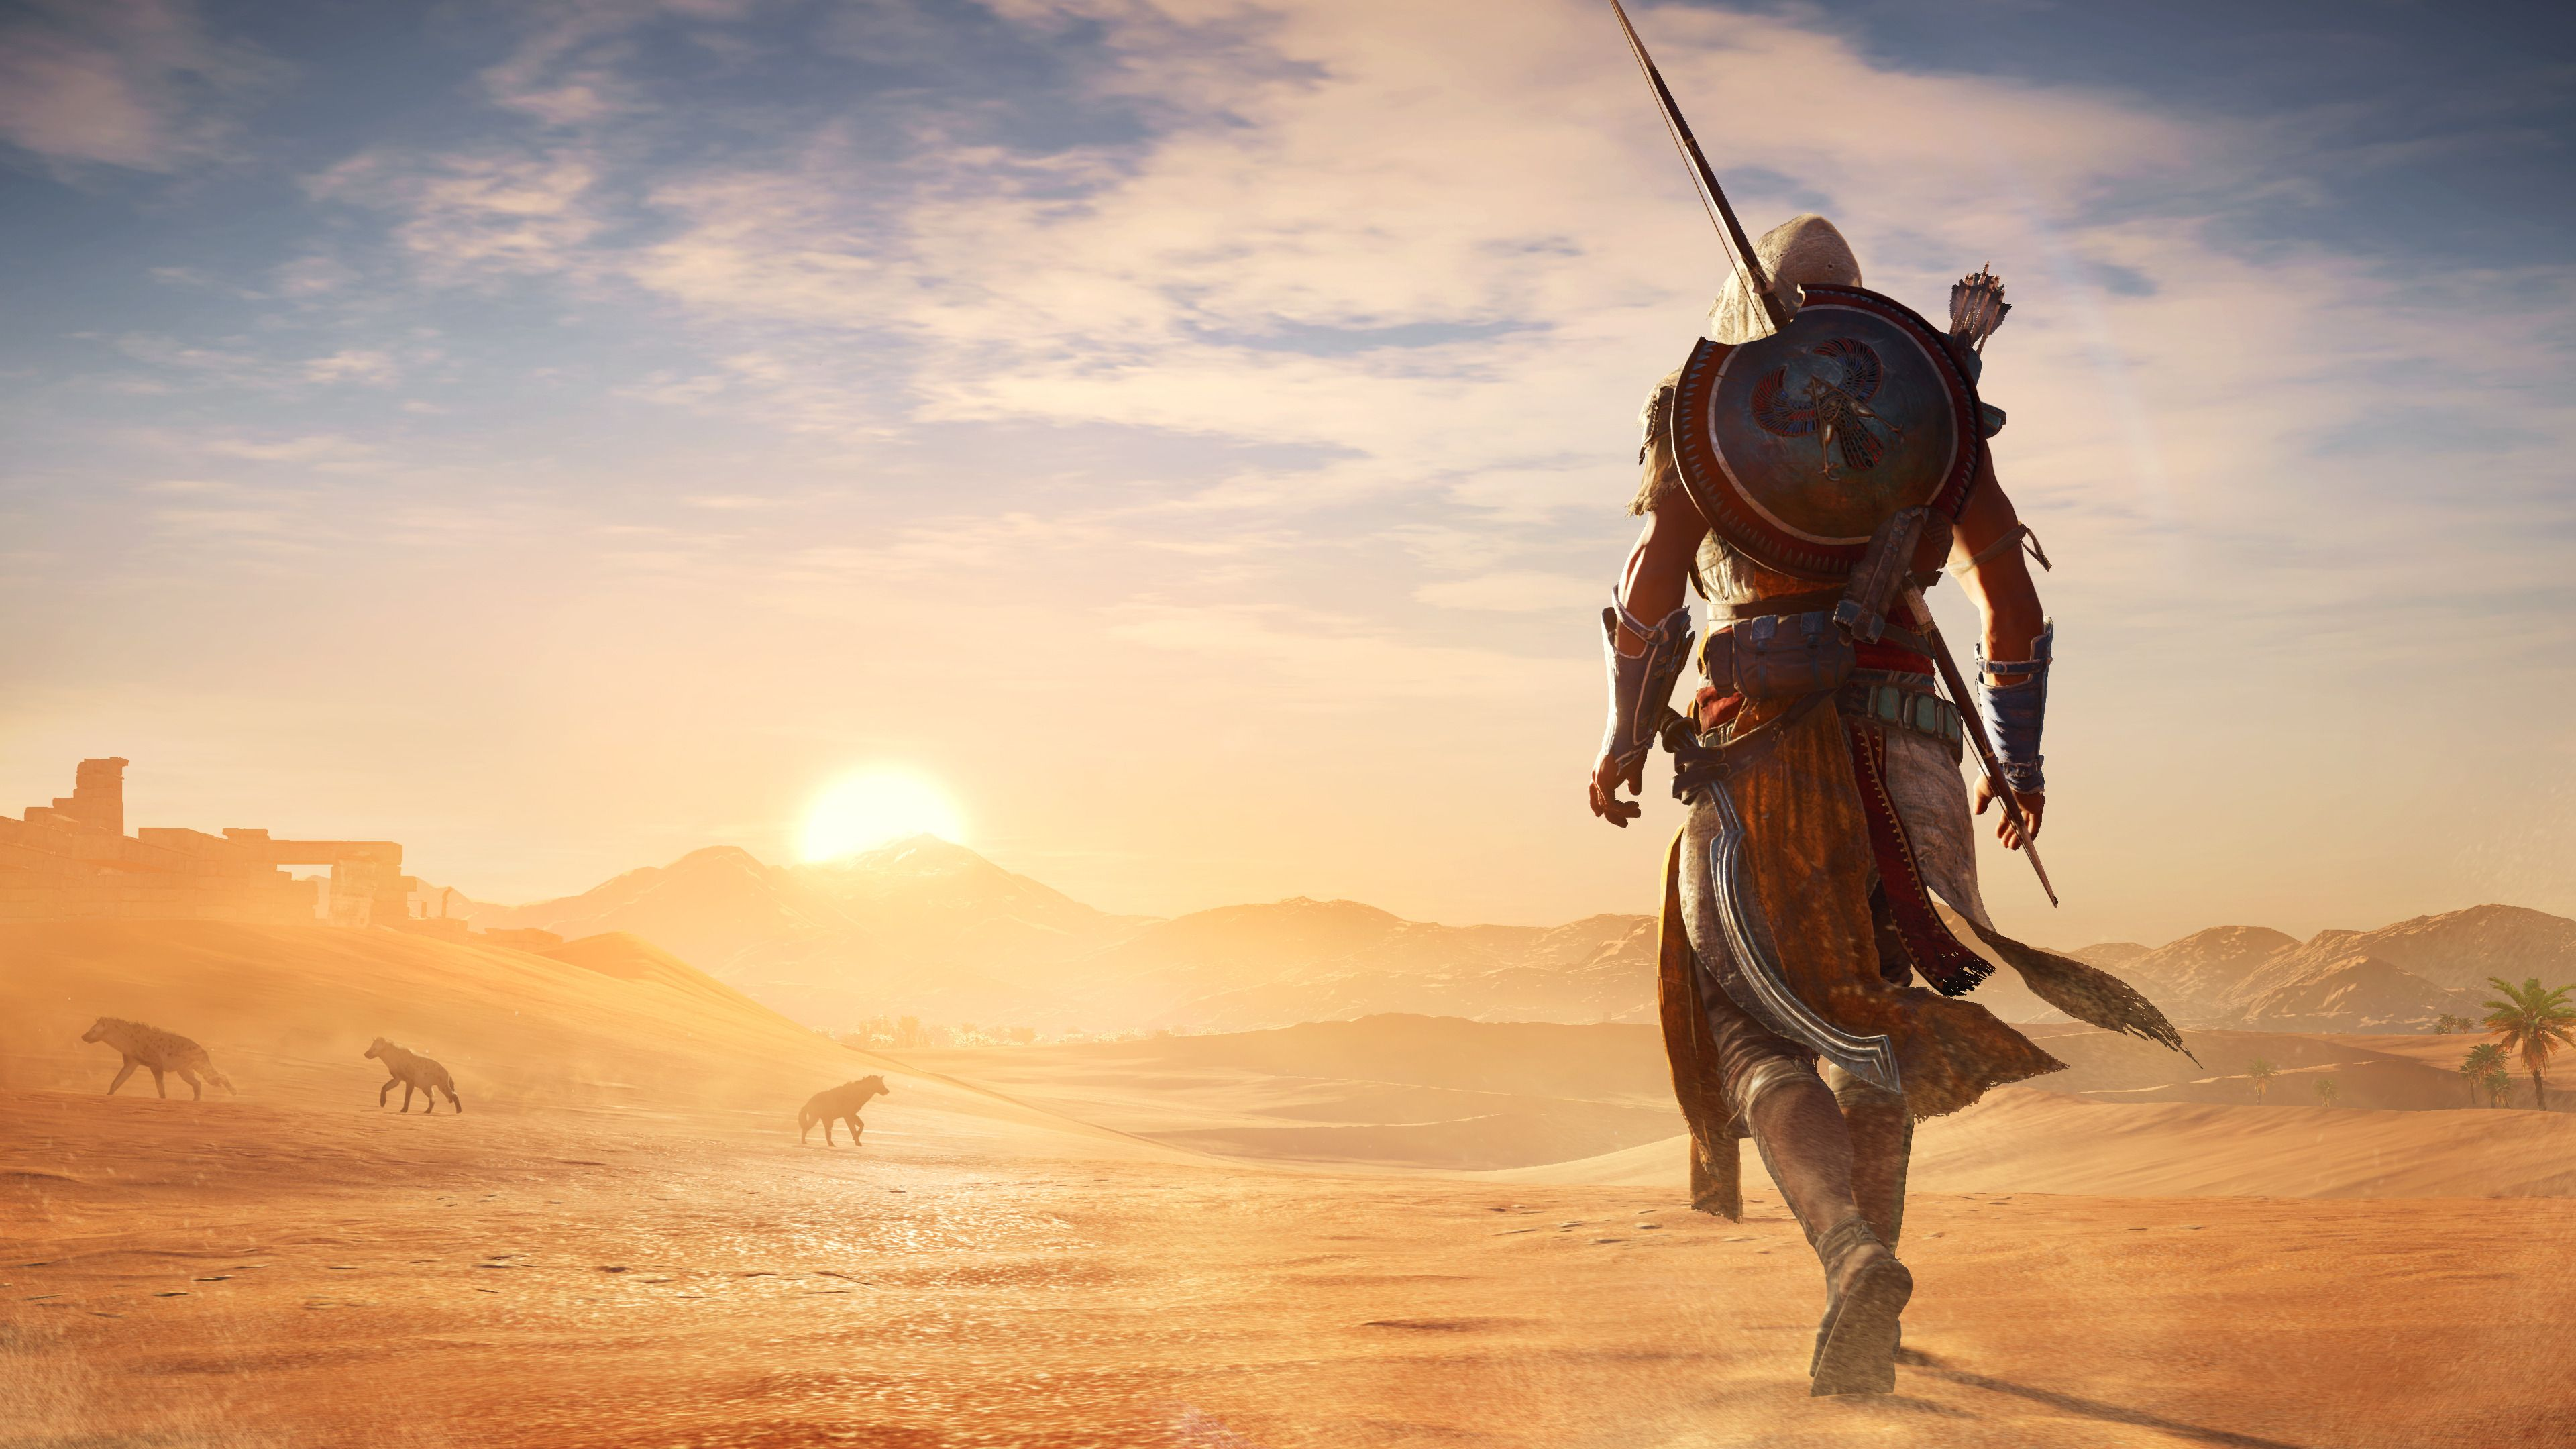 Assassin S Creed 4k Wallpapers Top Free Assassin S Creed 4k Backgrounds Wallpaperaccess